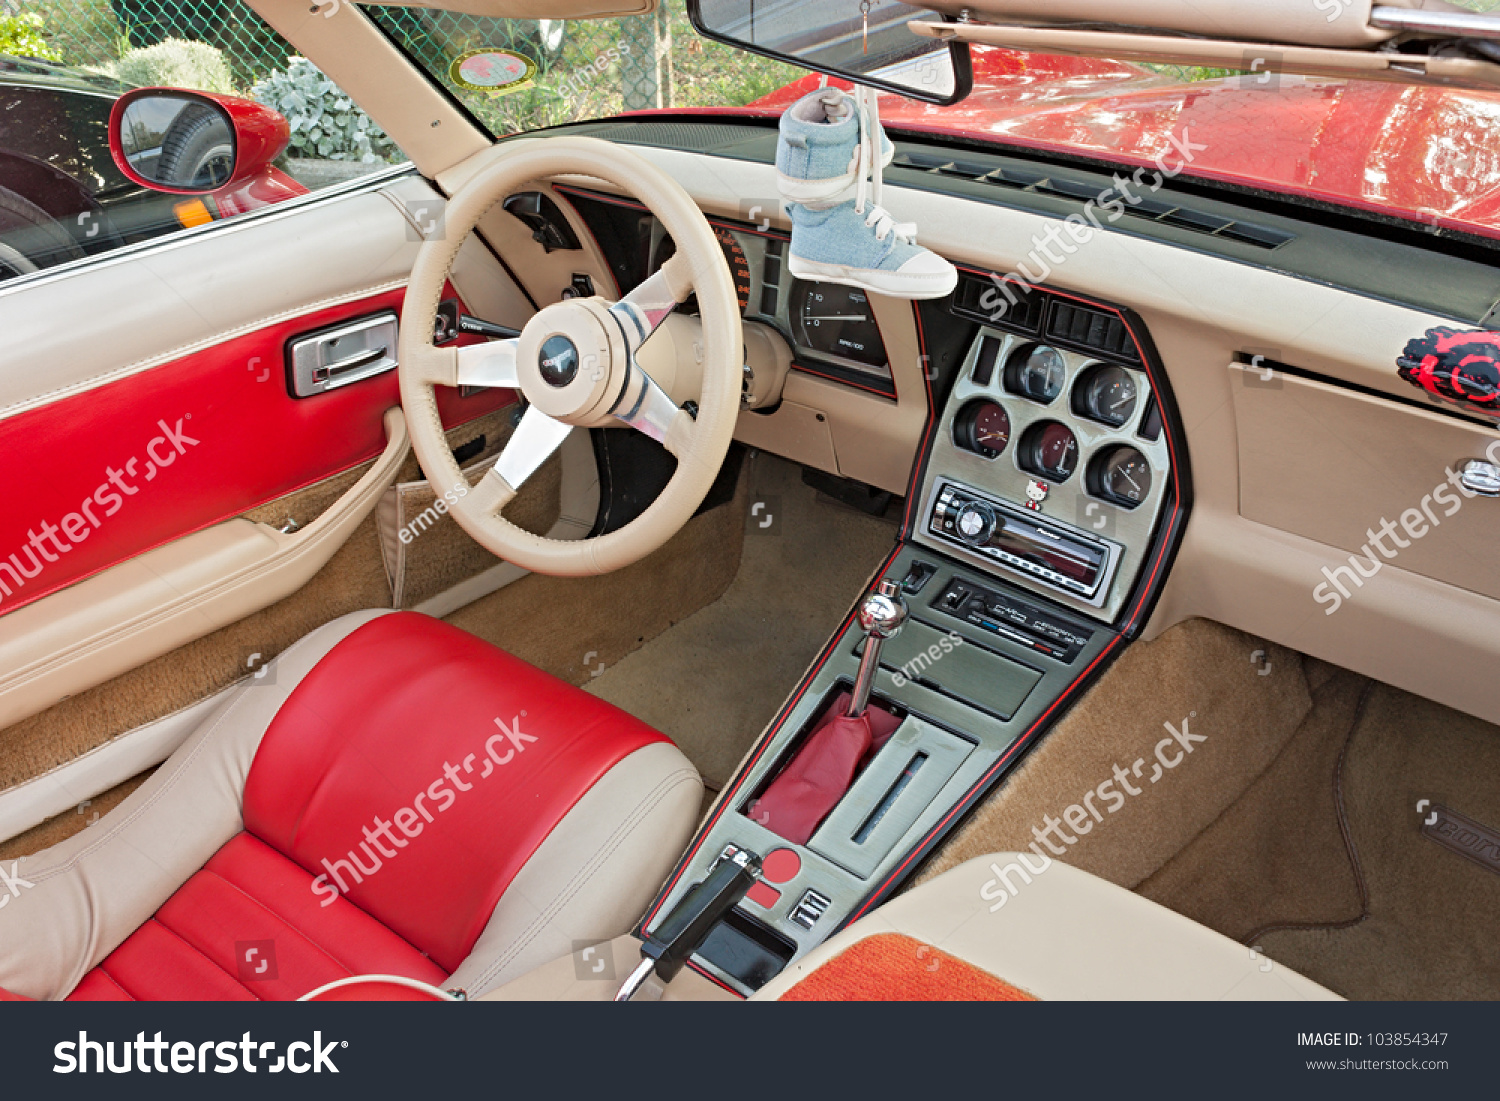 cervia ra italy may 12 a vintage car interior dashboard of chevrolet corvette exposed at. Black Bedroom Furniture Sets. Home Design Ideas